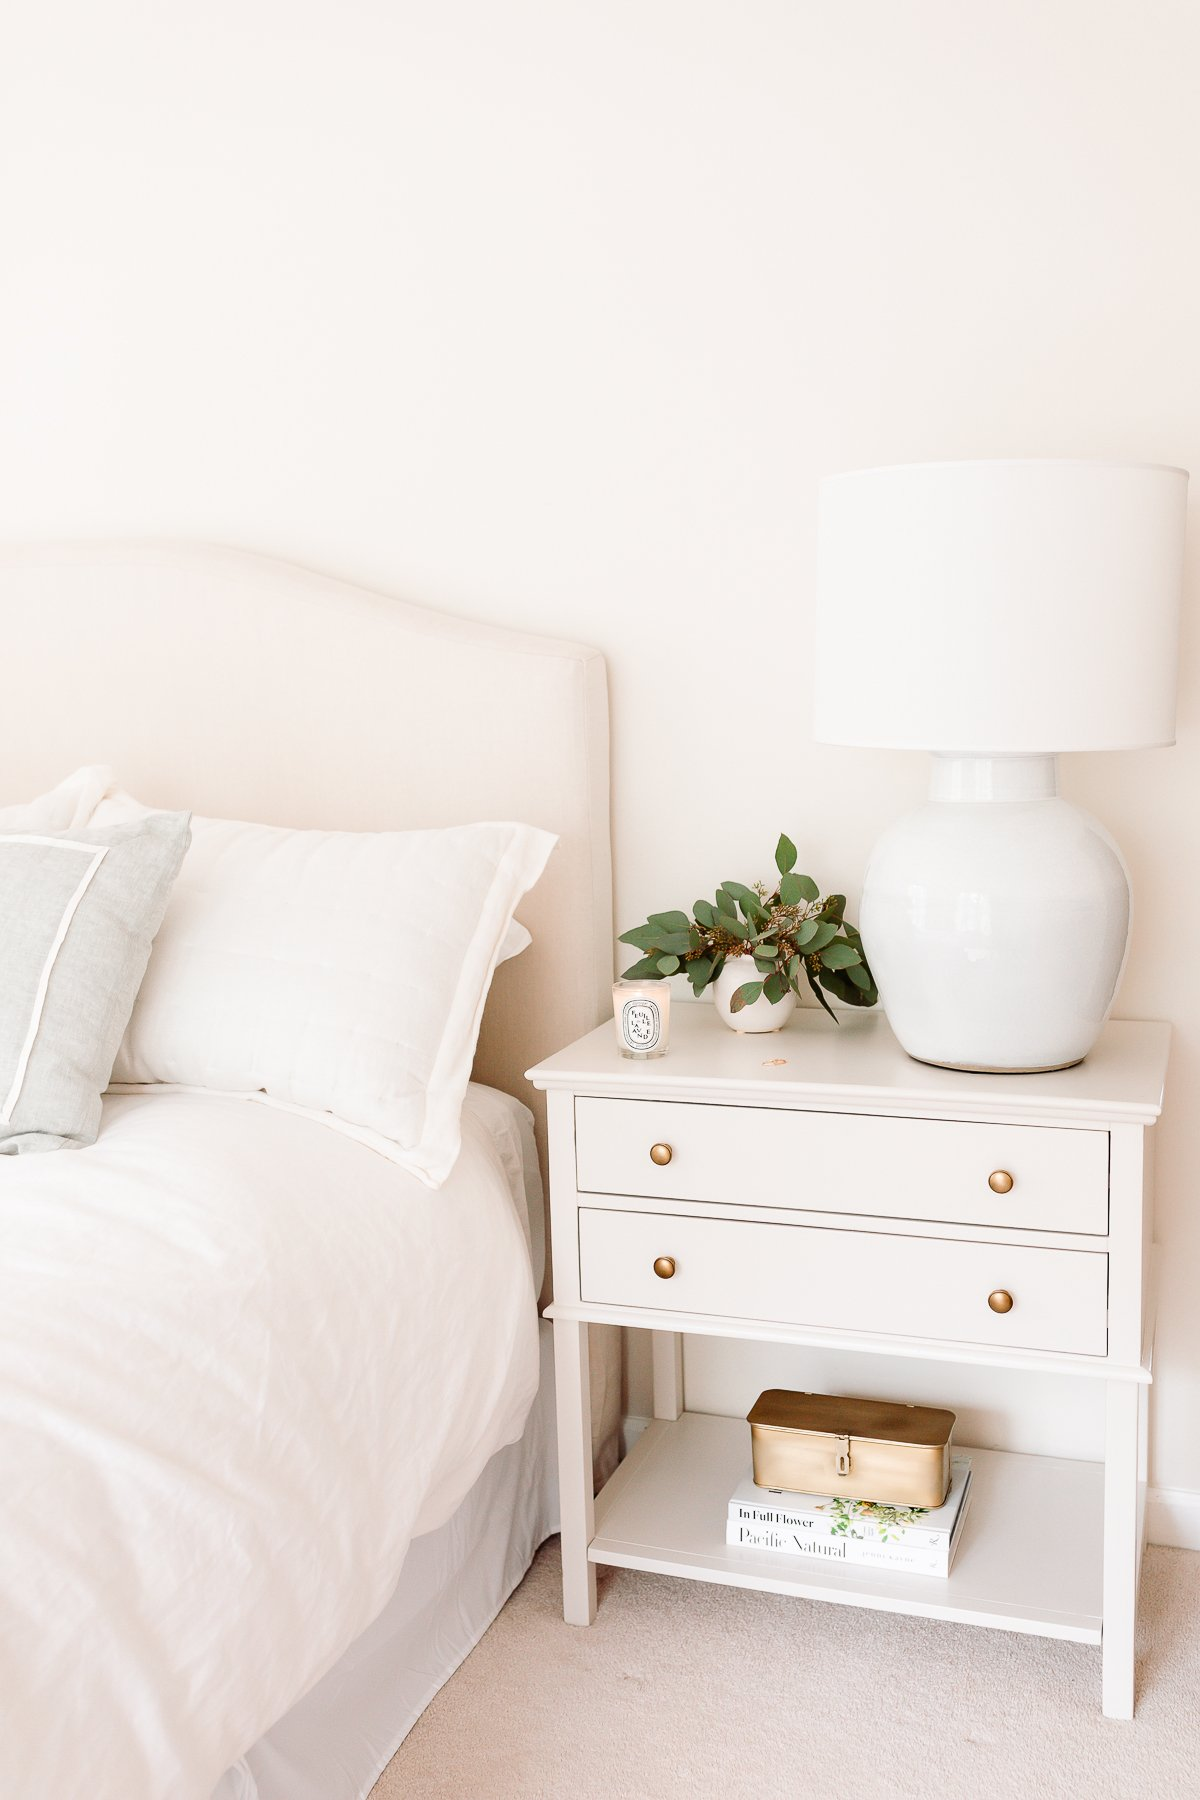 nightstand next to bed